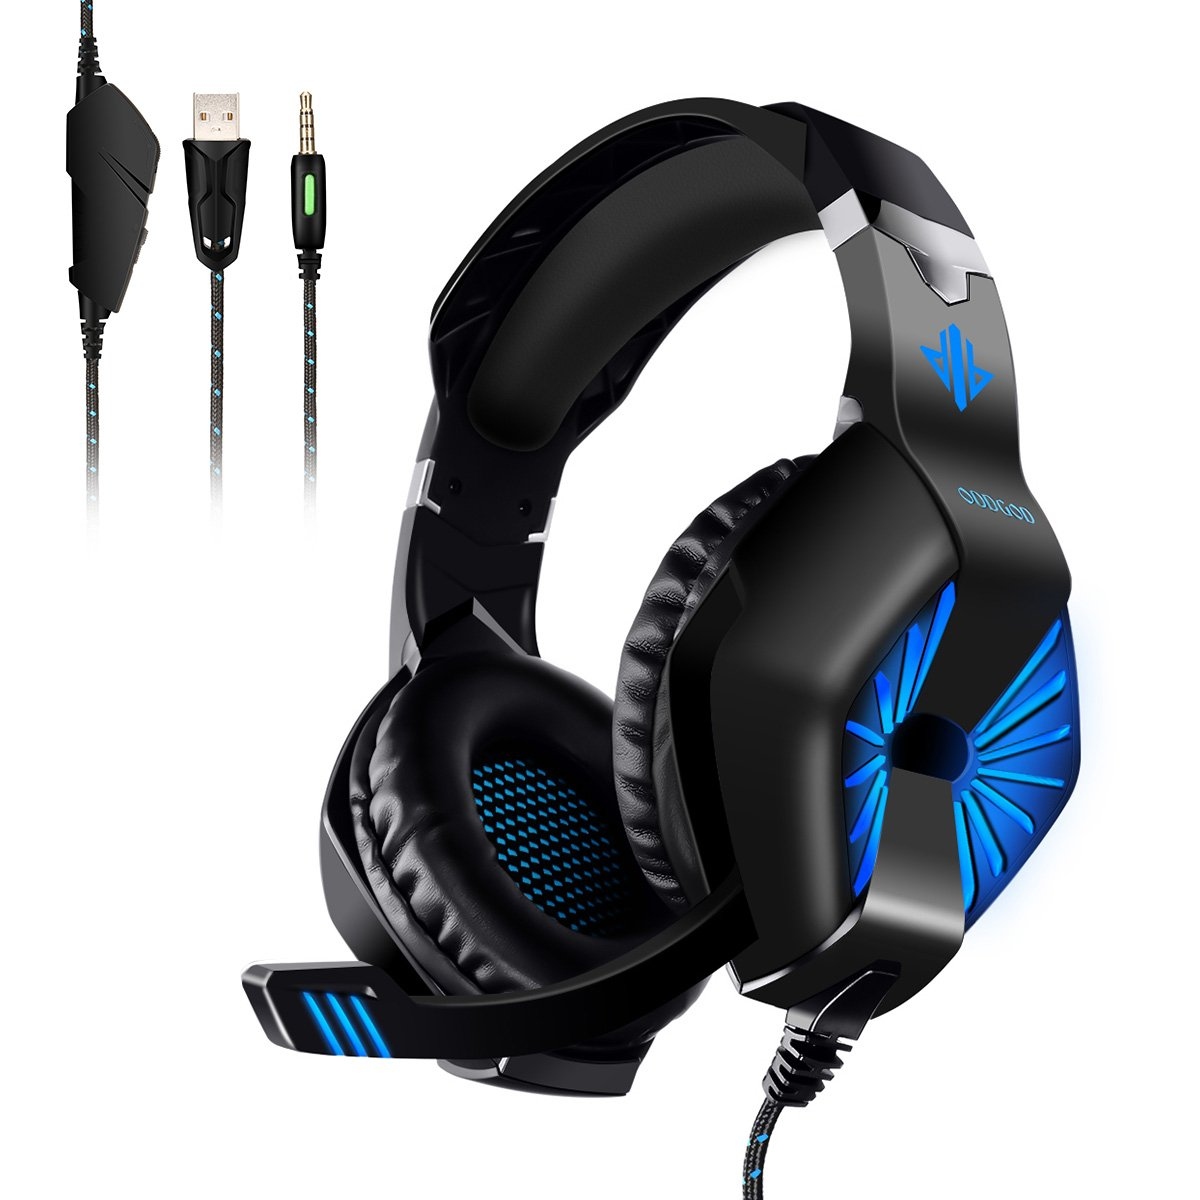 Gaming Headsets, ELEGIANT Over-Ear Computer Gaming Headphones with Microphone, Bass Stereo Surround Sound Volume Control, Compatible with PS4 Pro/PS4 Xbox One Nintendo Switch PC Mobilephone Laptop Mac